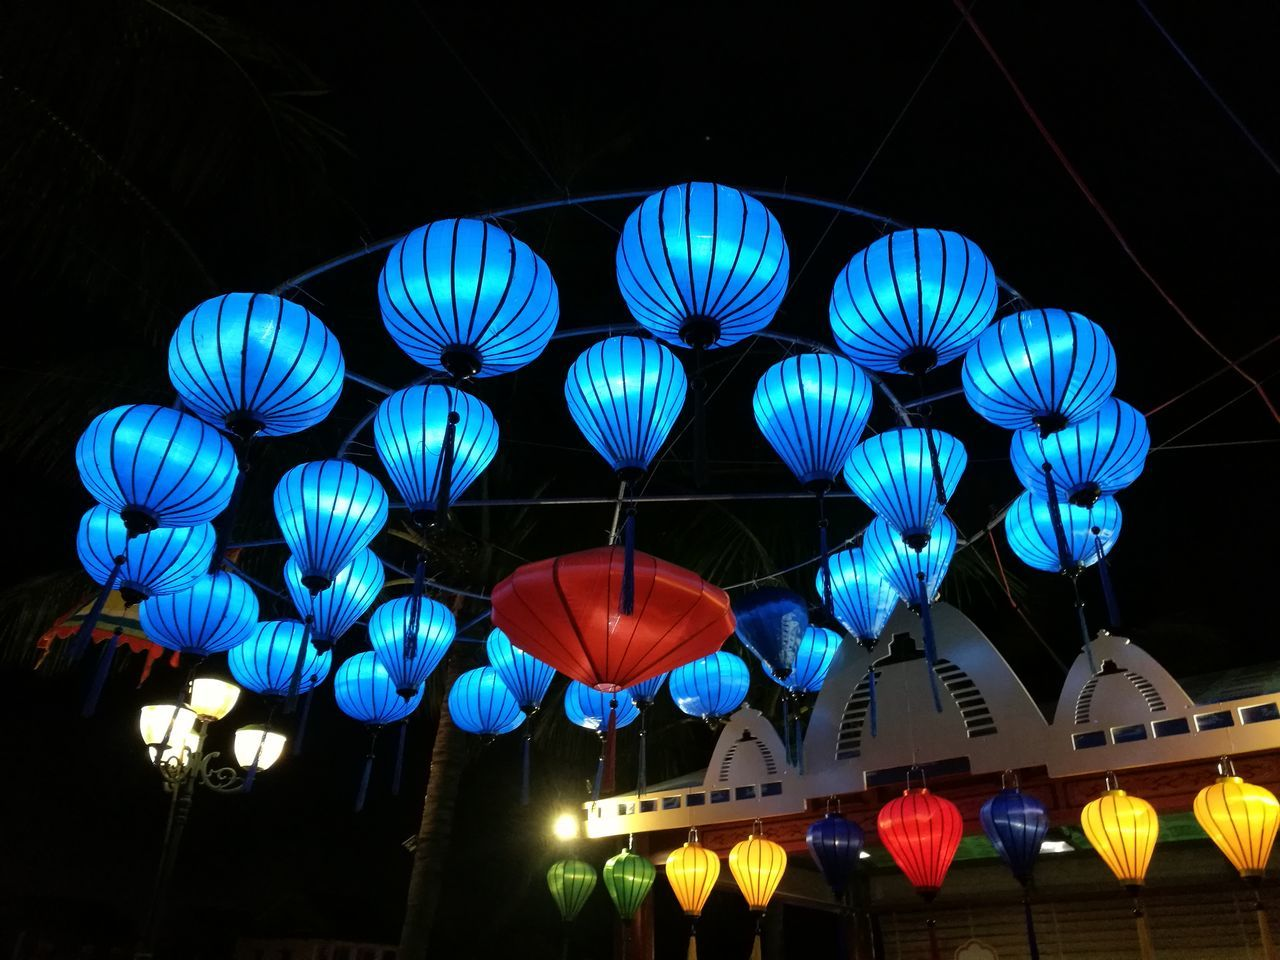 Hoi An lanterns. Lanterns In The Dark Hoi An Illuminated Hanging Lighting Equipment Celebration Low Angle View No People Outdoors Chinese Lantern Festival Night